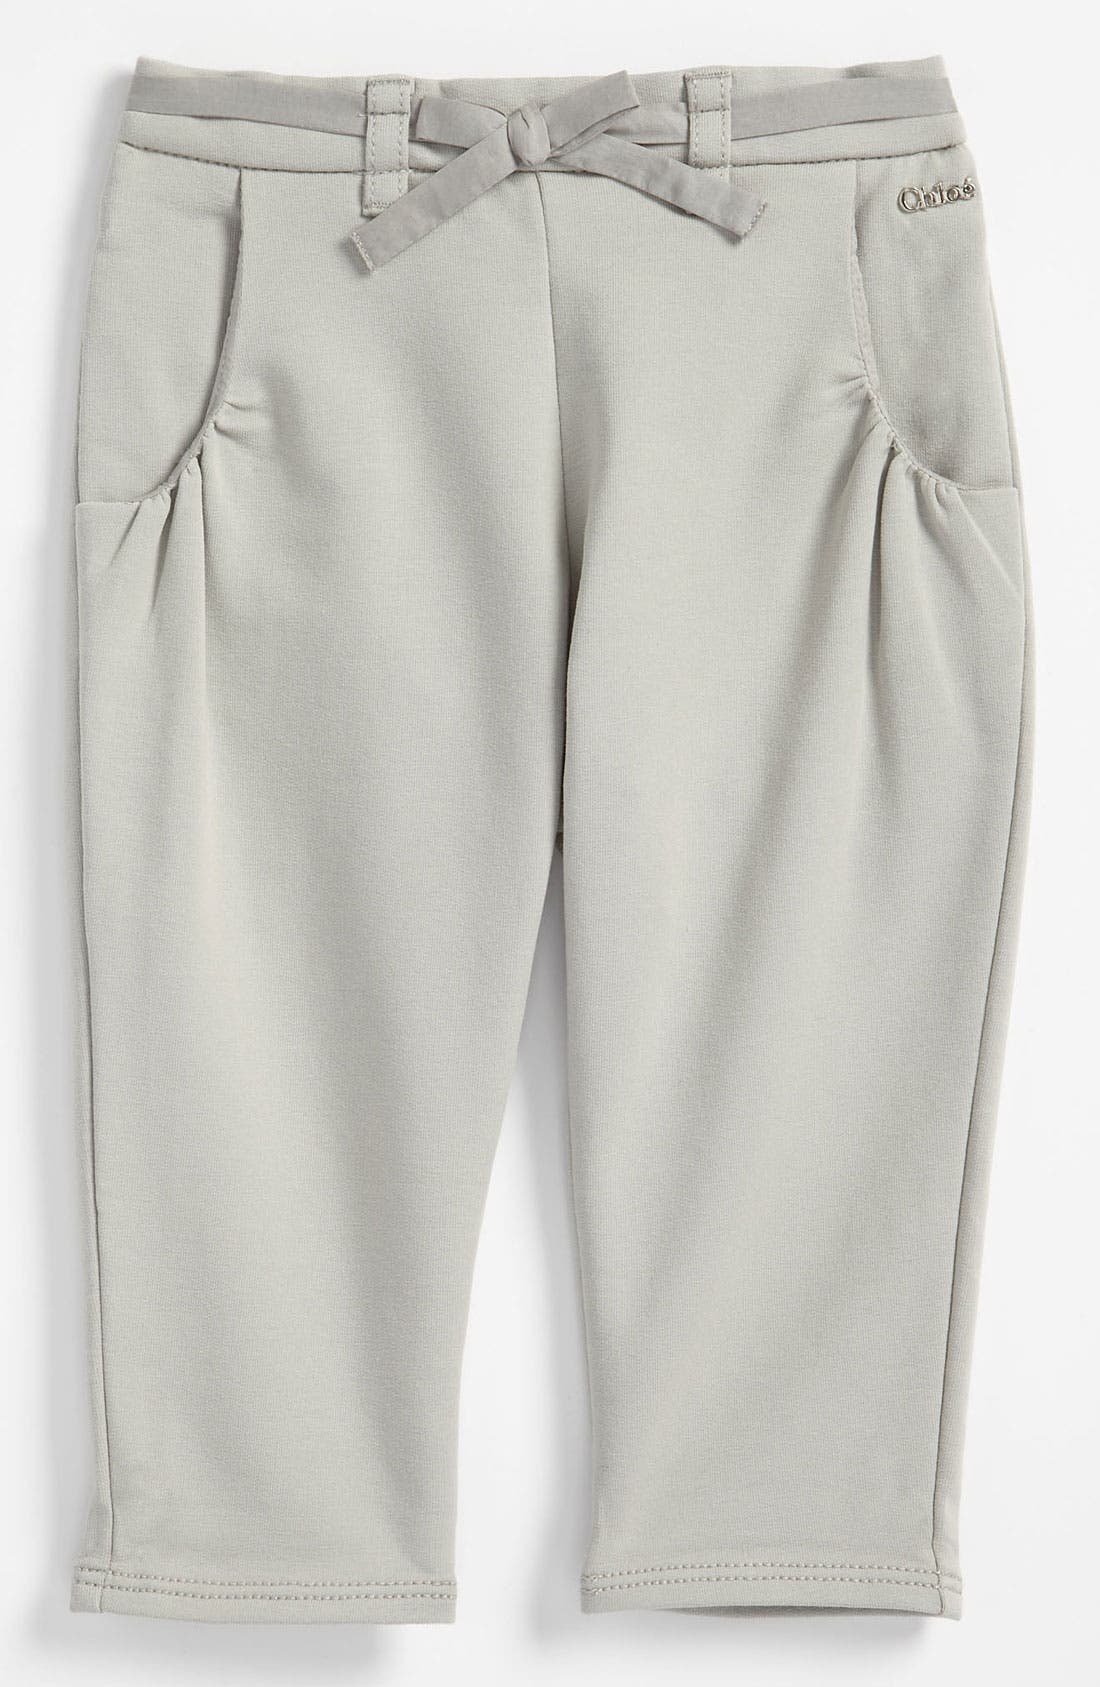 Alternate Image 1 Selected - Chloé Straight Leg Pants (Infant)